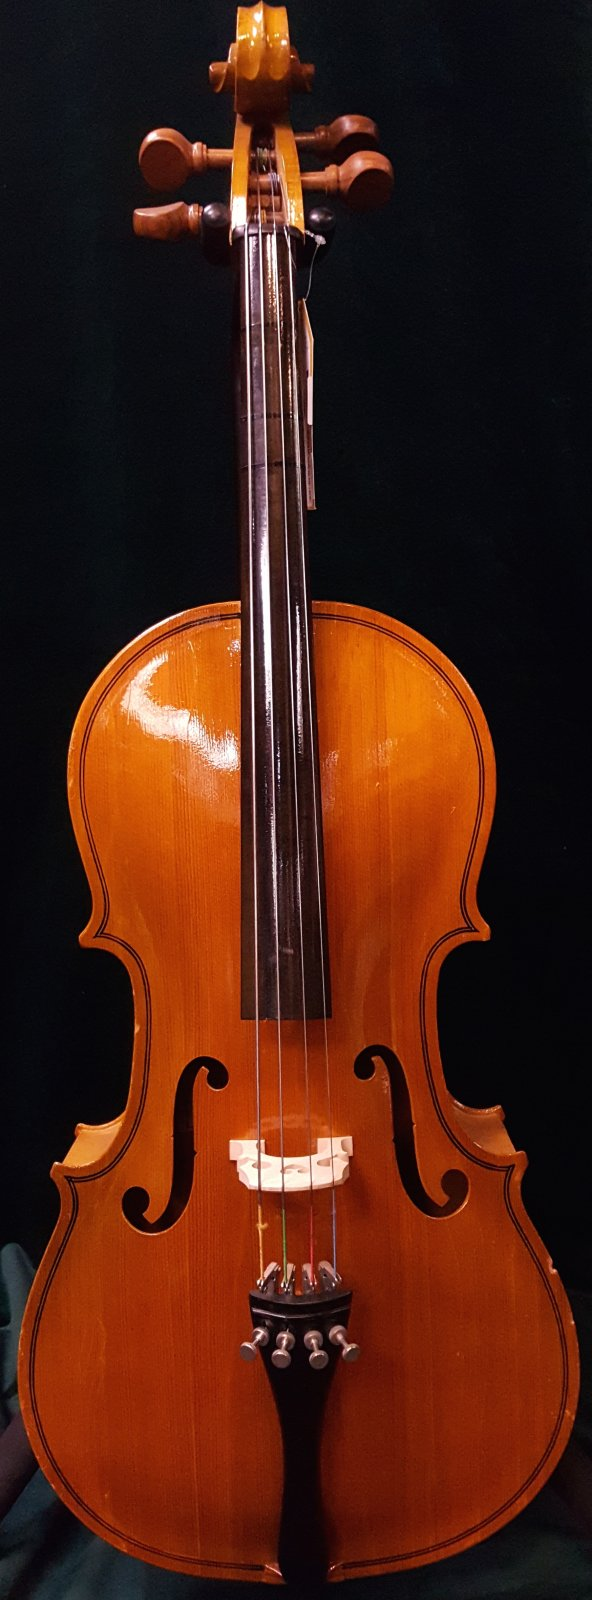 Used Englehardt Etude 1/2 Size Cello Outfit